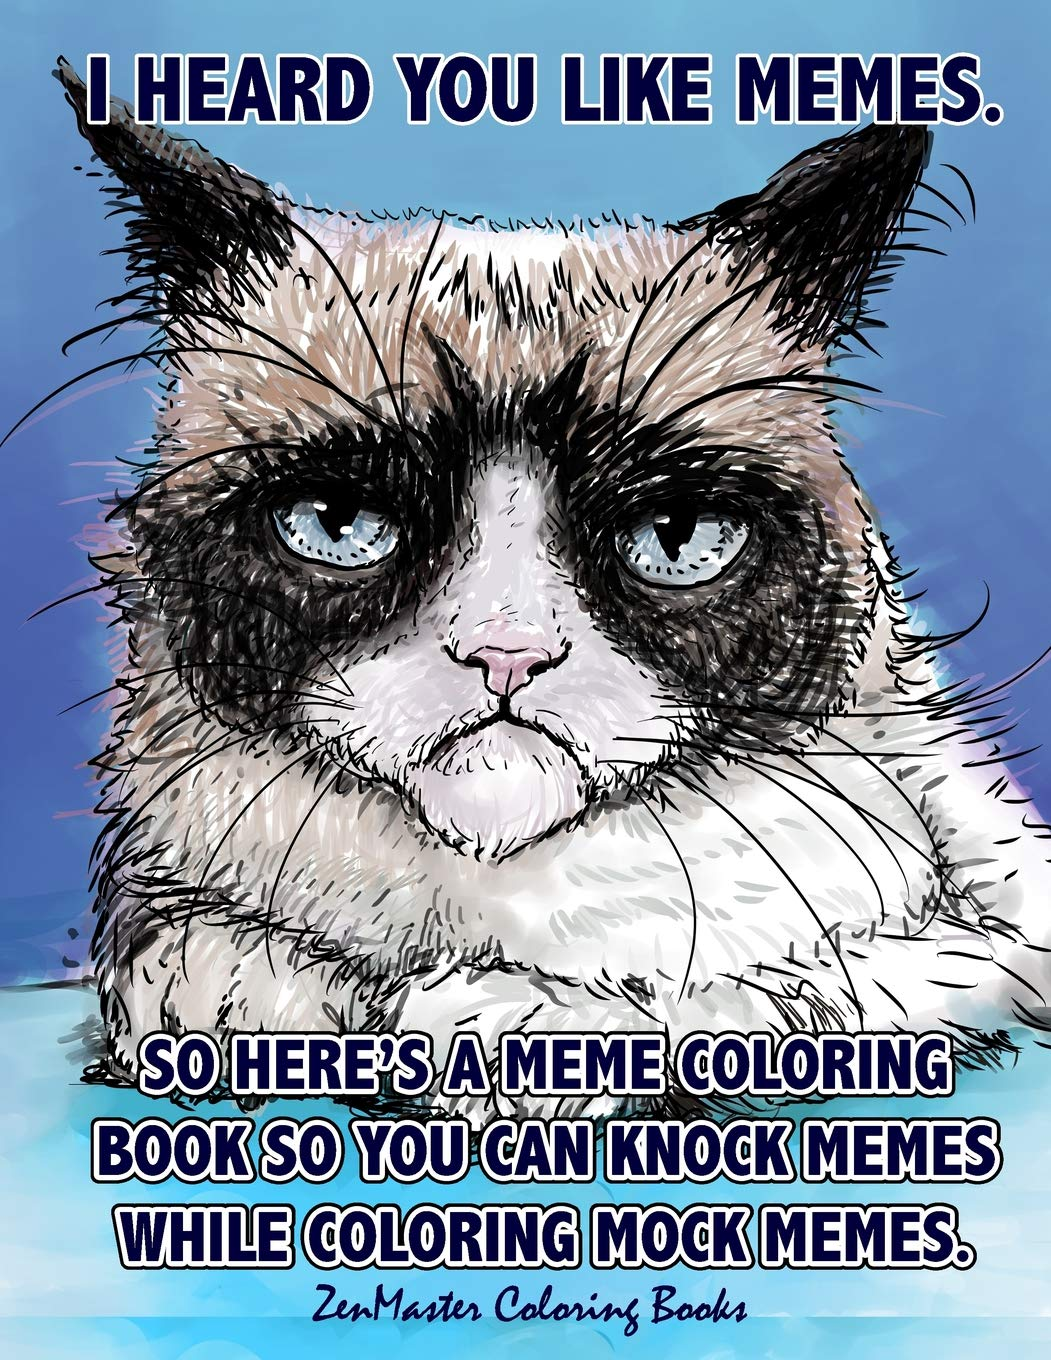 Adult Coloring Book Of Memes Memes Coloring Book For Adults For Relaxation Stress Relief And Humor Coloring Books For Grownups Volume 51 Zenmaster Coloring Book 9781542500616 Amazon Com Books